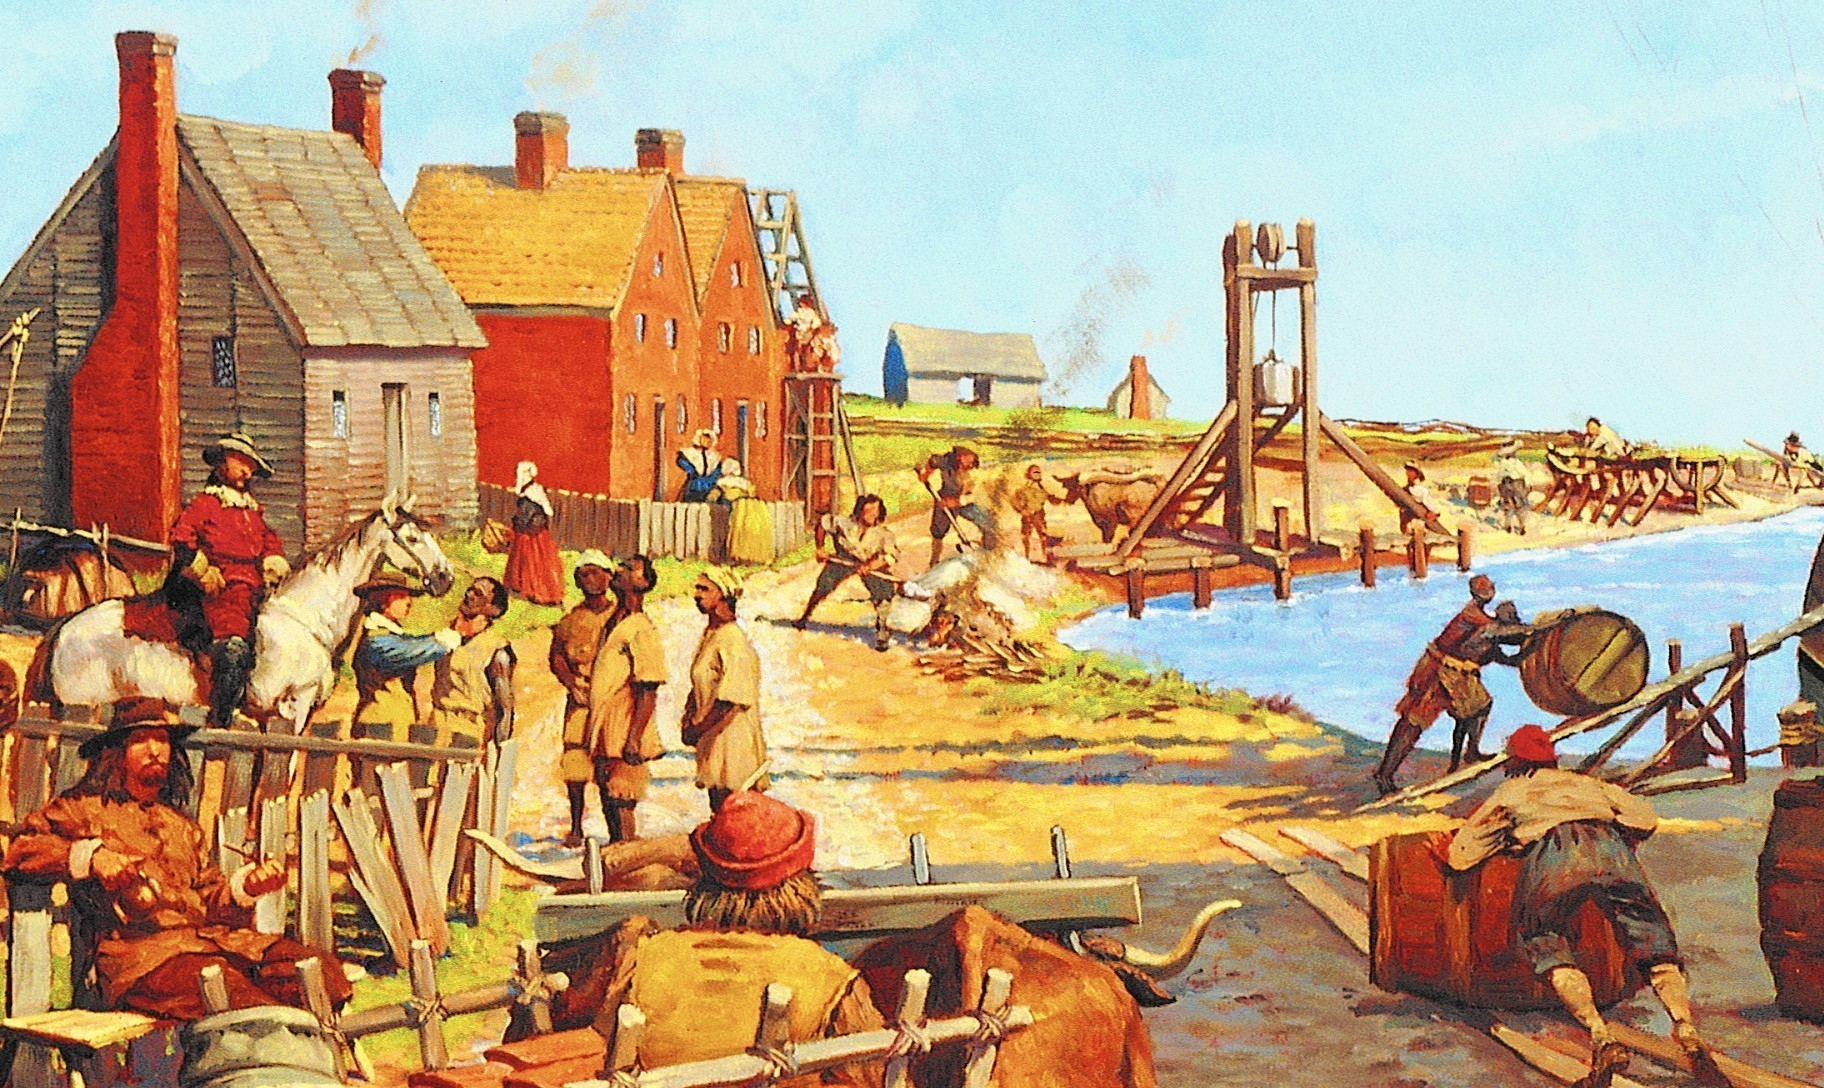 Jamestown set the course for slavery in Virginia - Daily Press